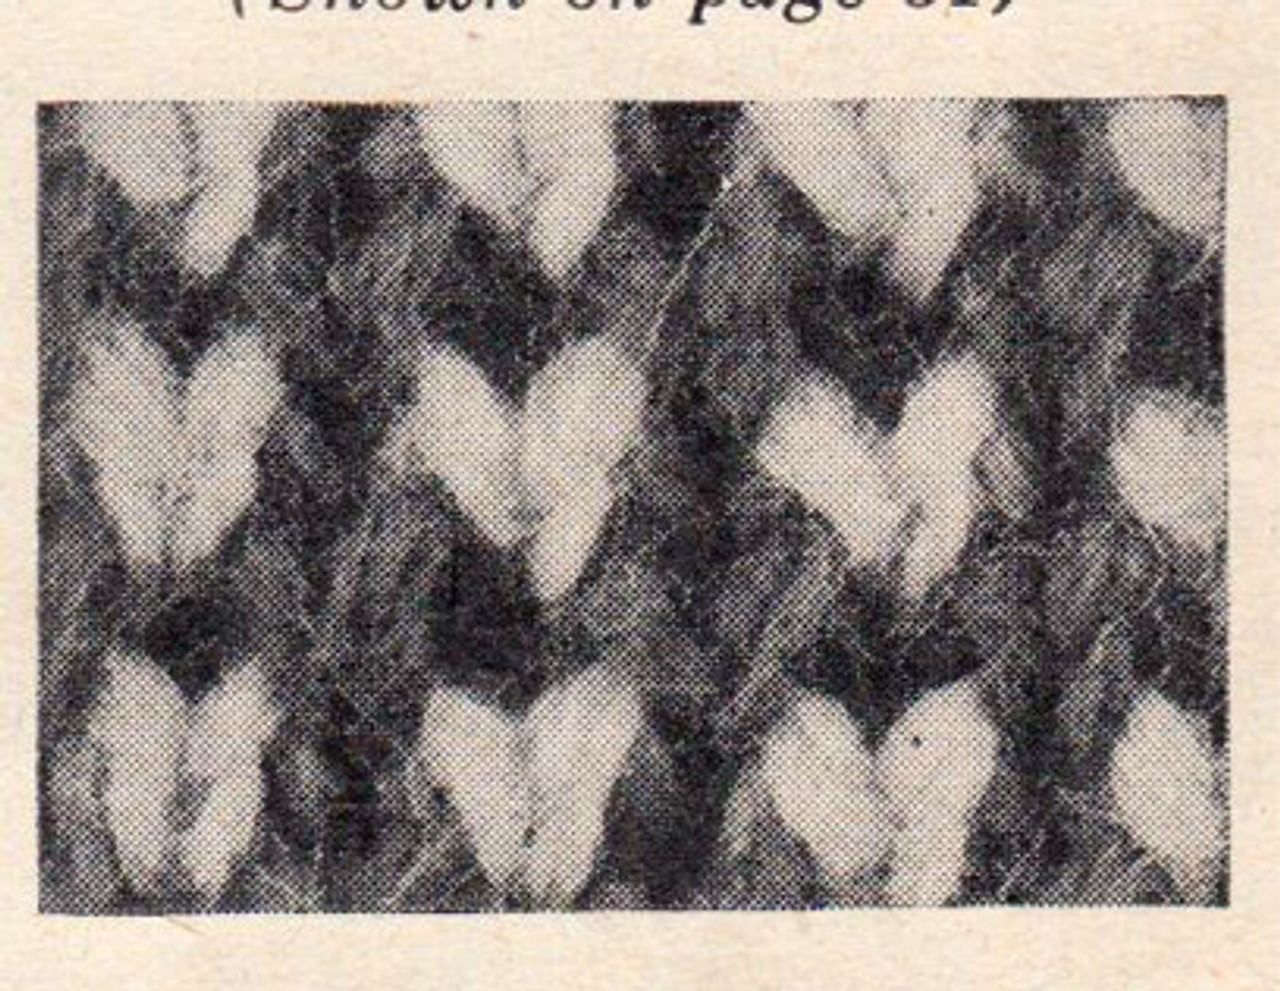 Checked Jacket Knitted Pattern Stitch Illustration